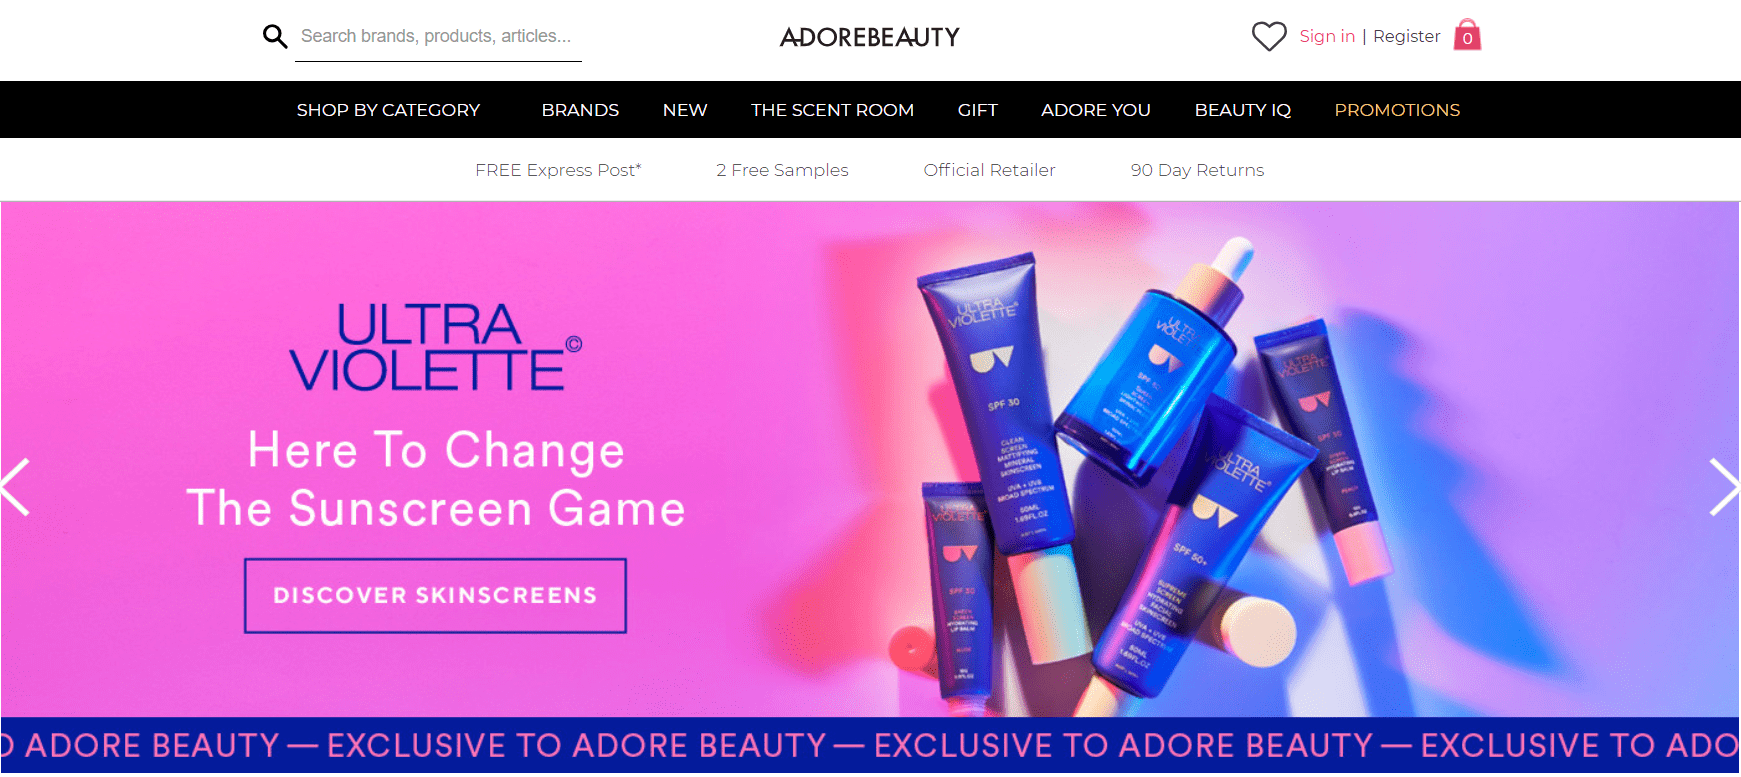 adore beauty website